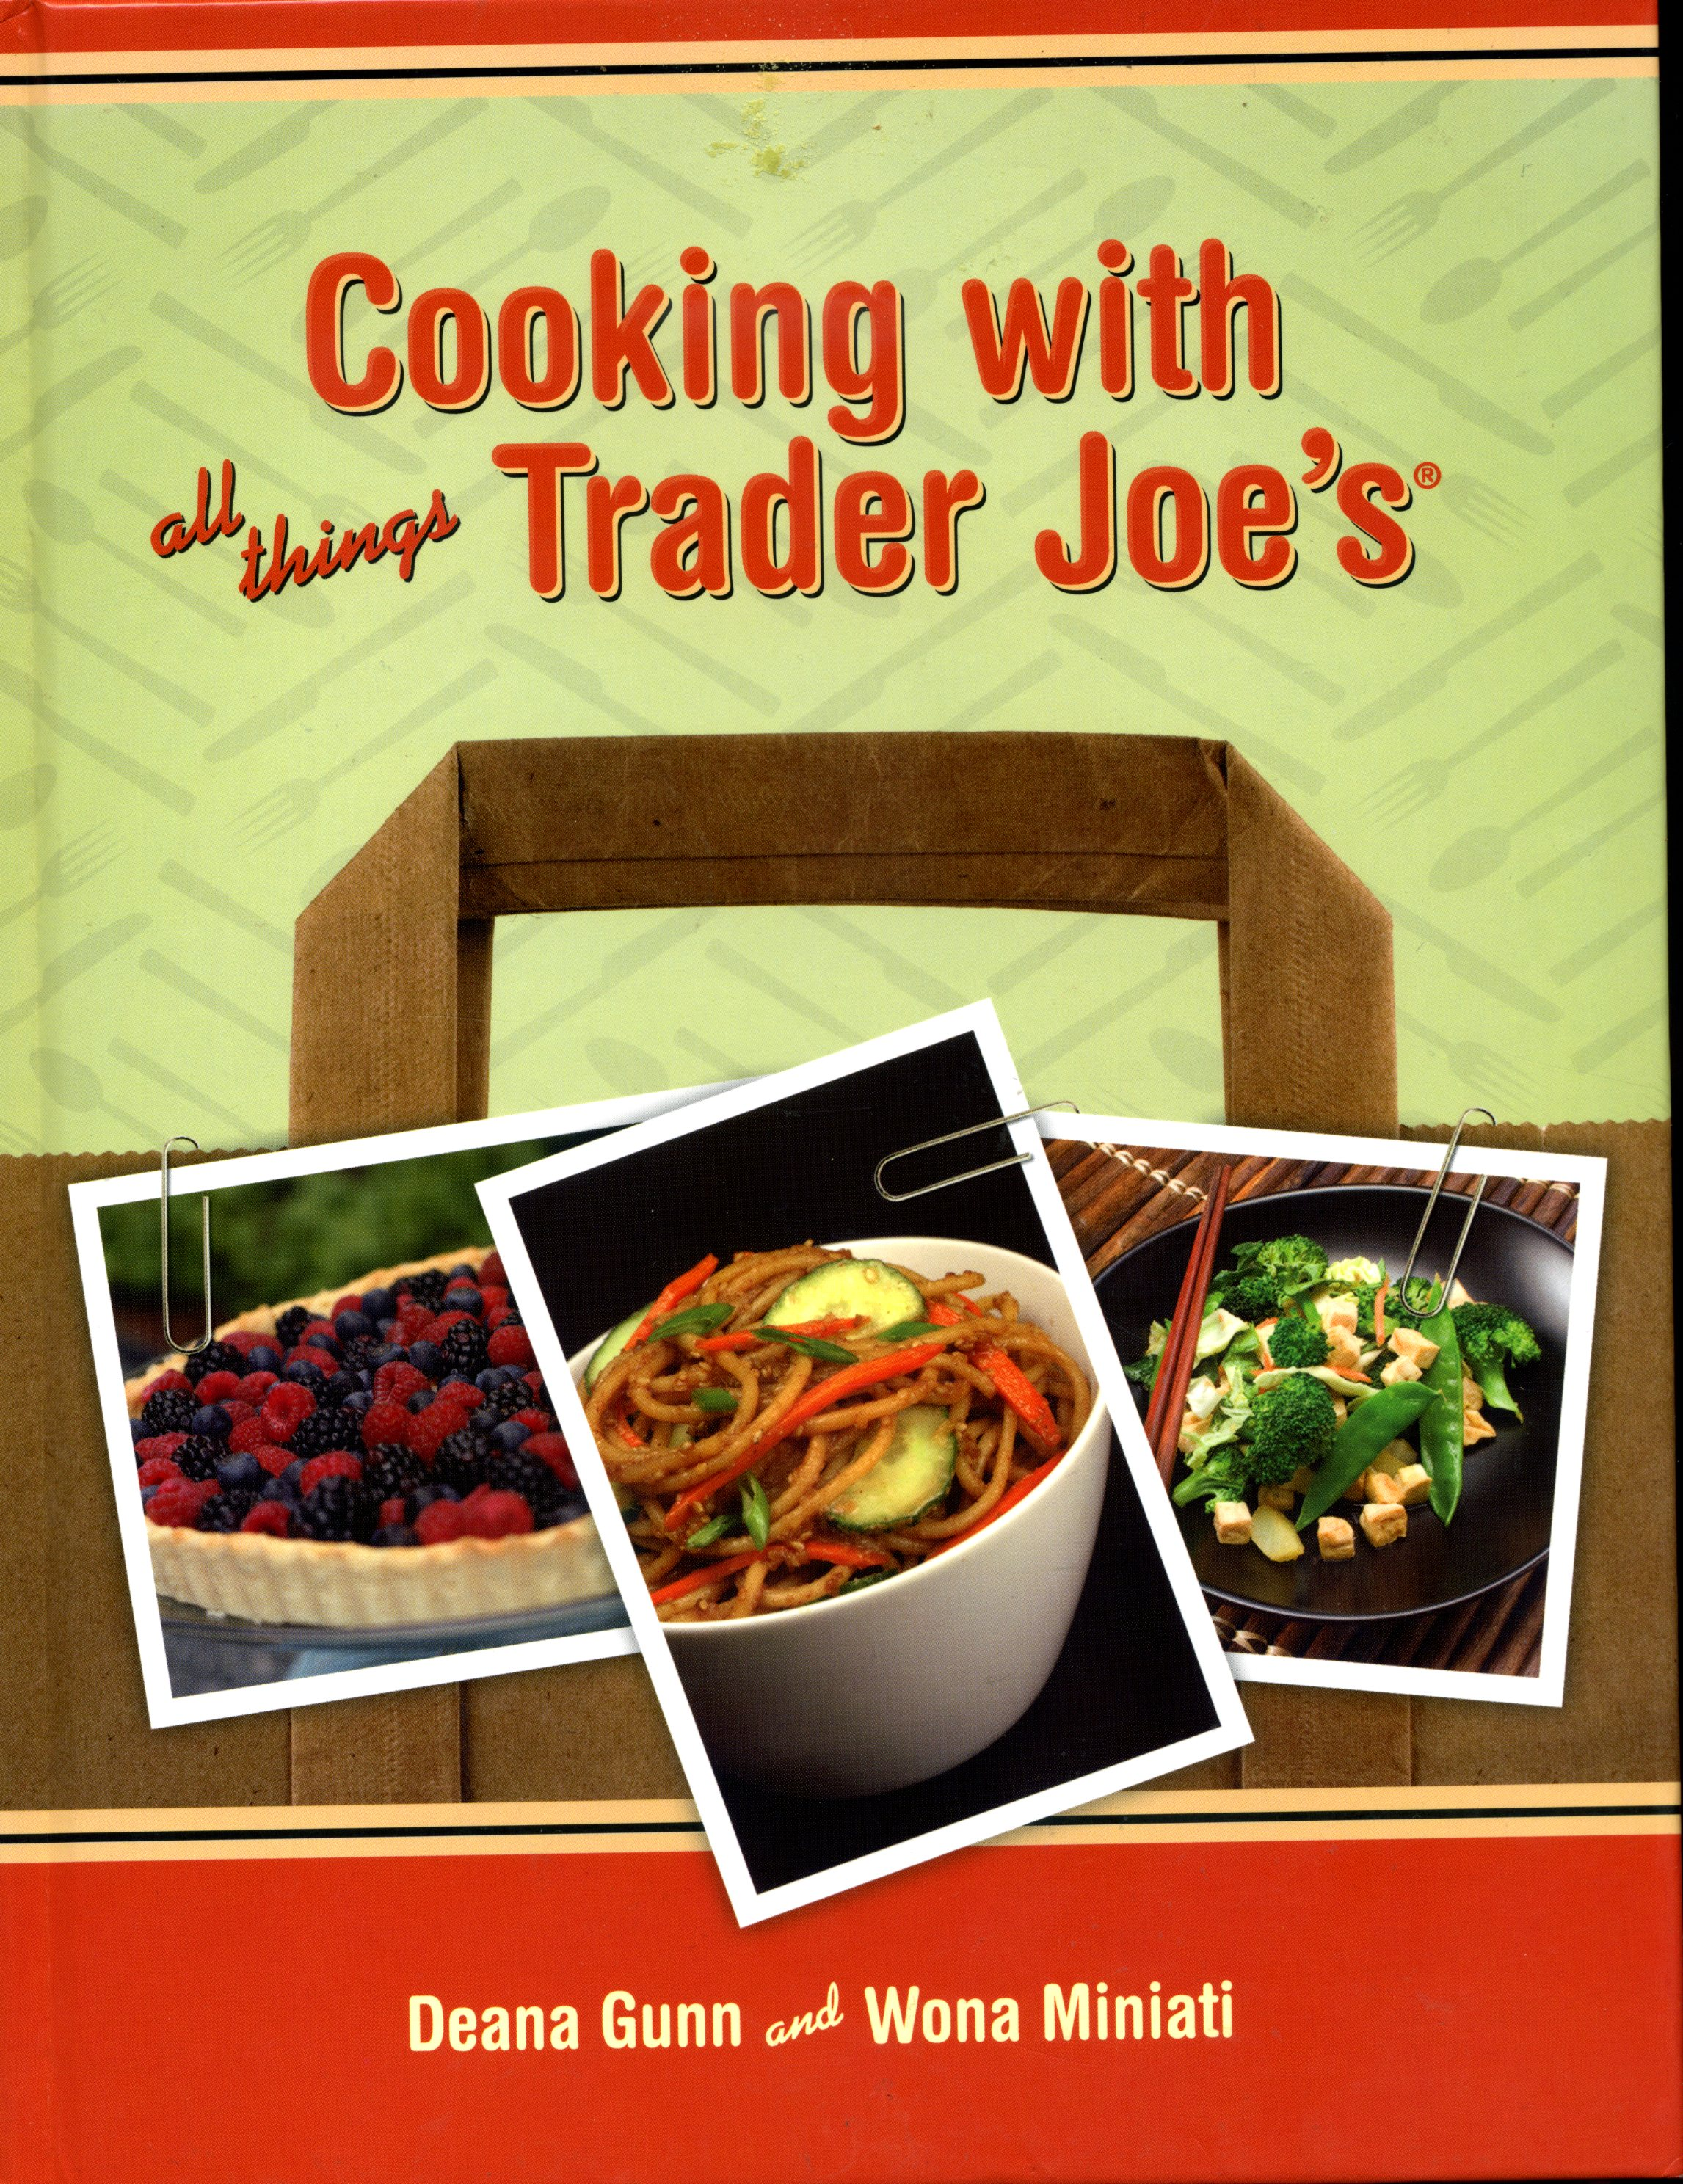 trader joe cookbook